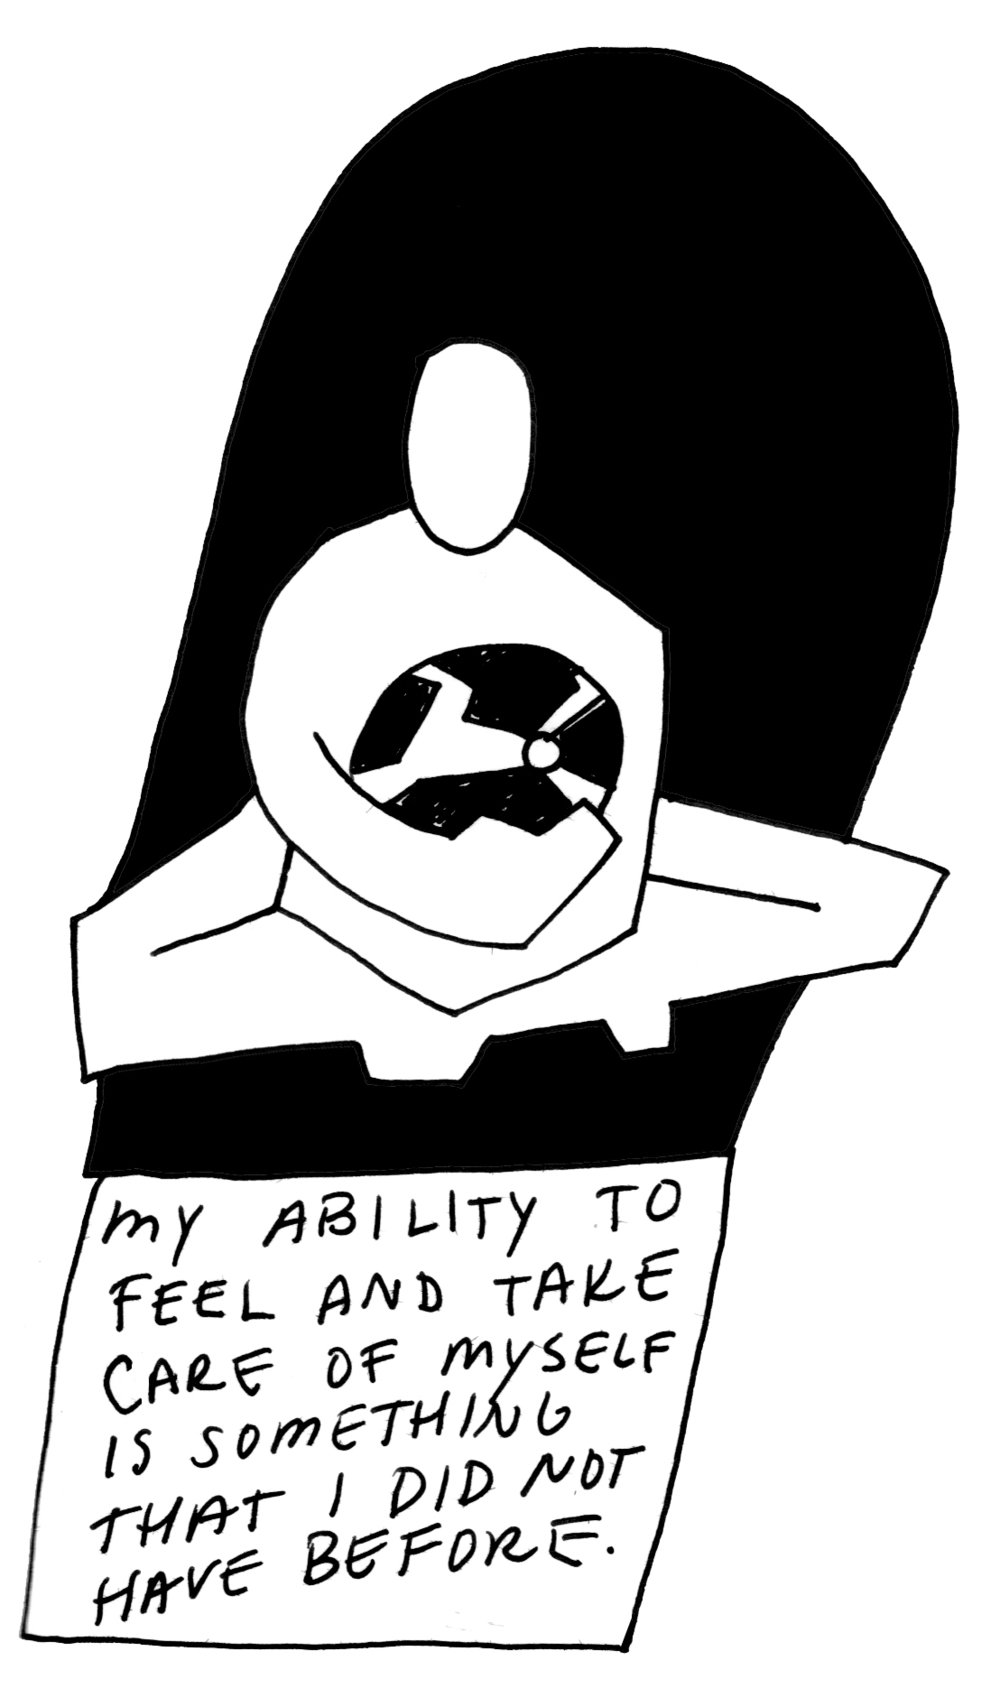 10 my ability to feel-c3.jpg